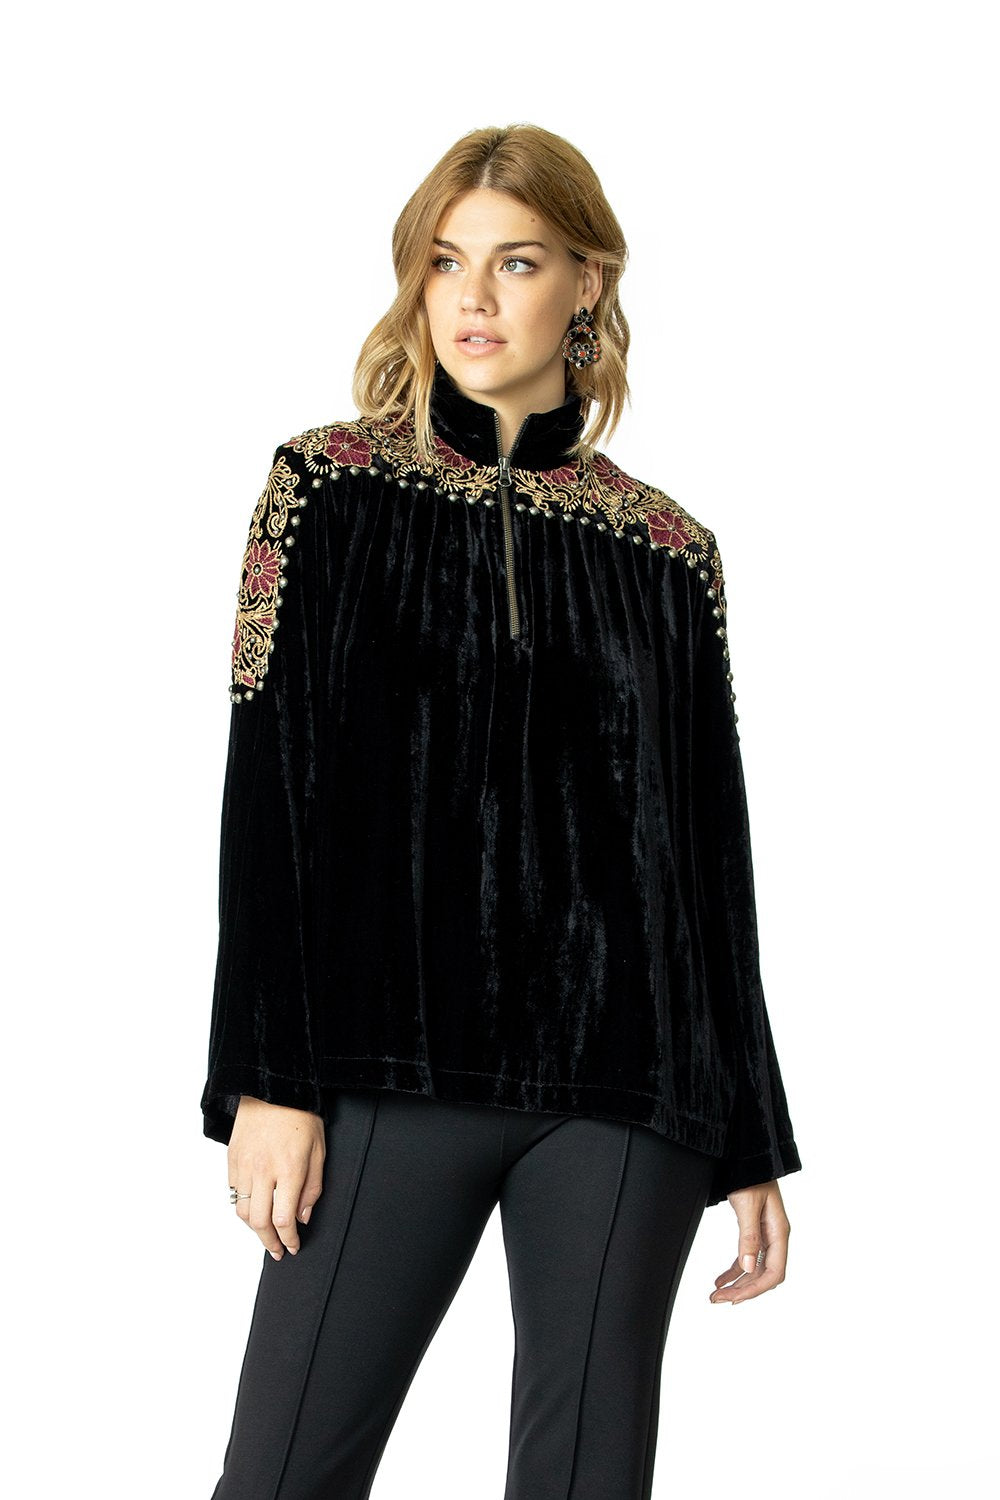 Double D Ranch Ketch a Wildflower Top in Black 6Whiskey T3384 Nashville Fall 2020